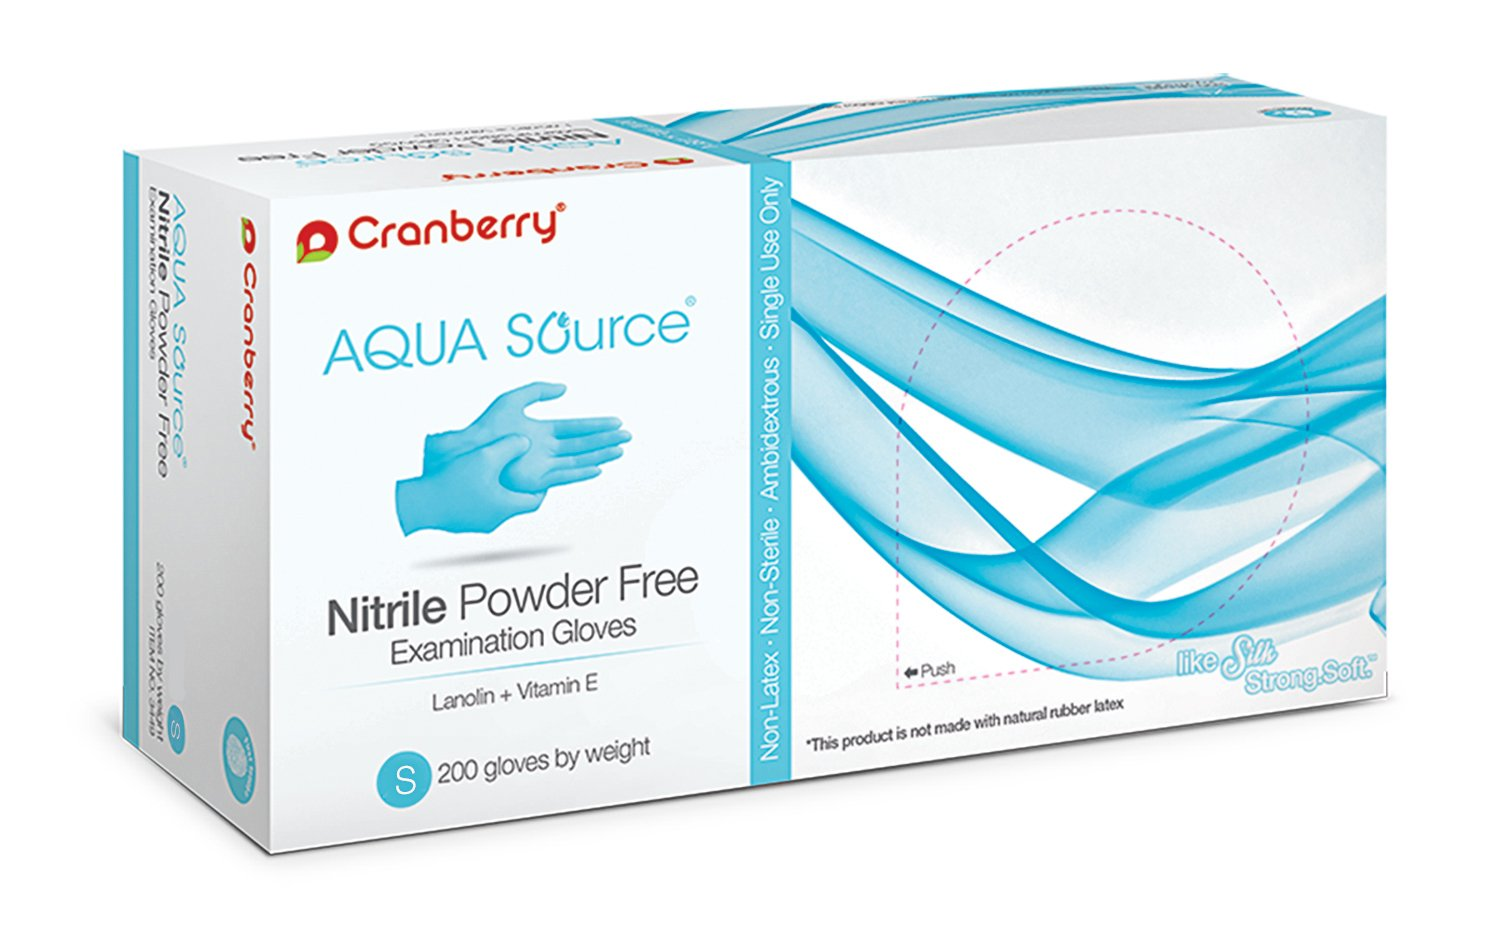 Cranberry USA CR3446case Aqua Source Powder Free Exam Gloves, Small, Nitrile, Beaded-Cuff, Blue (Pack of 2000) by Cranberry USA